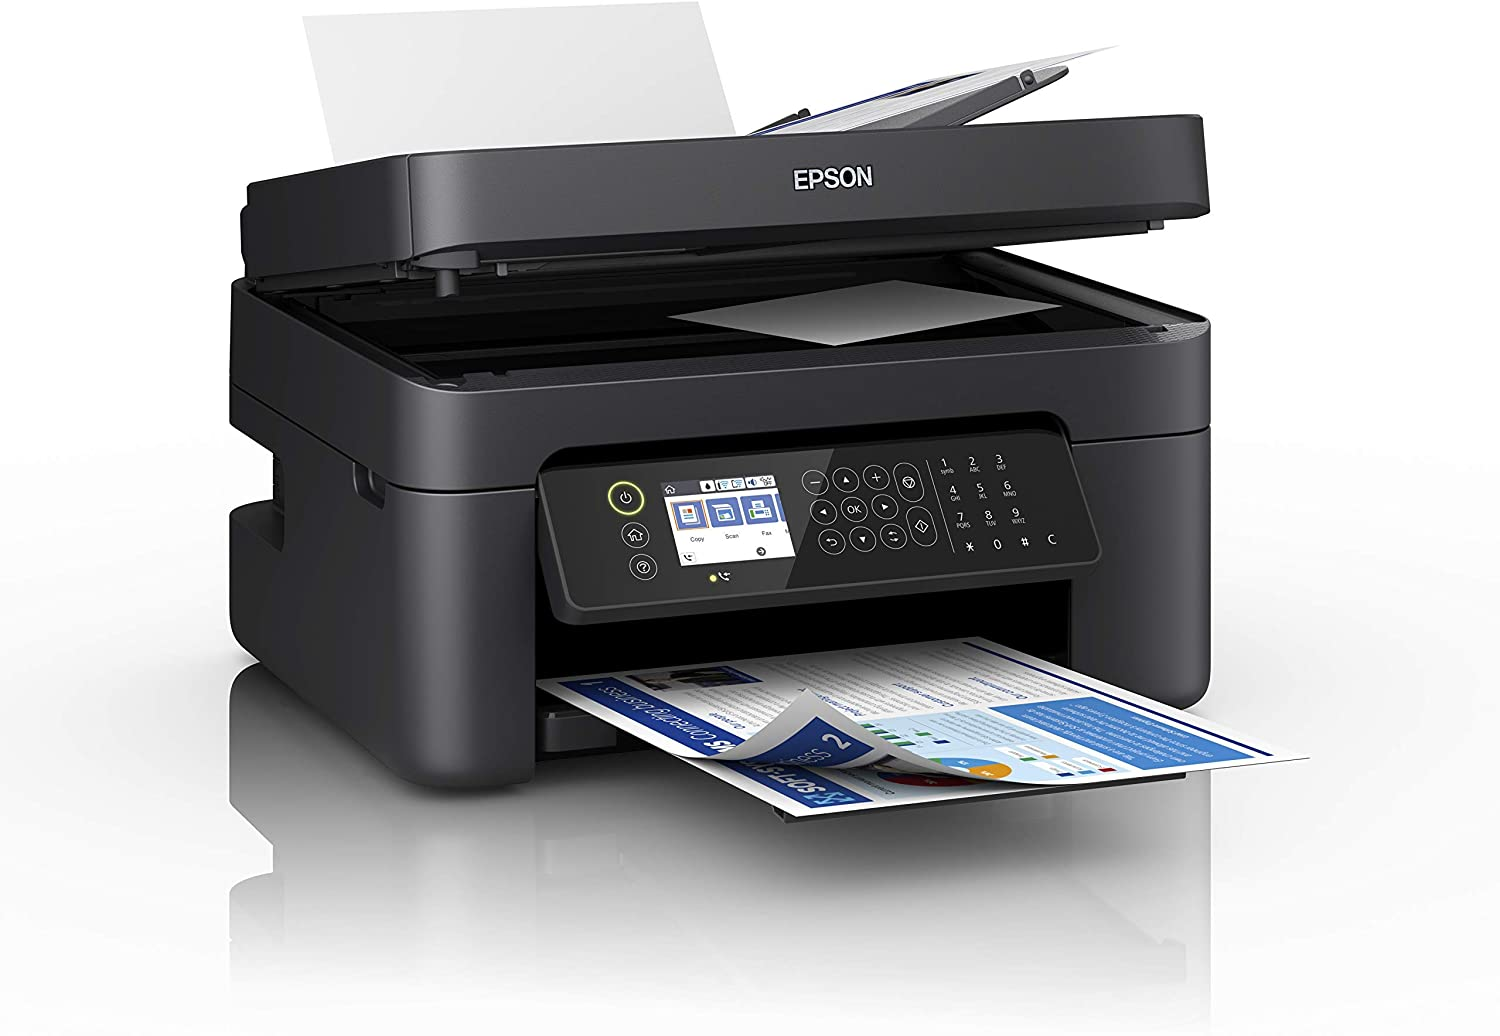 epson workforce wf-2850dwf opiniones